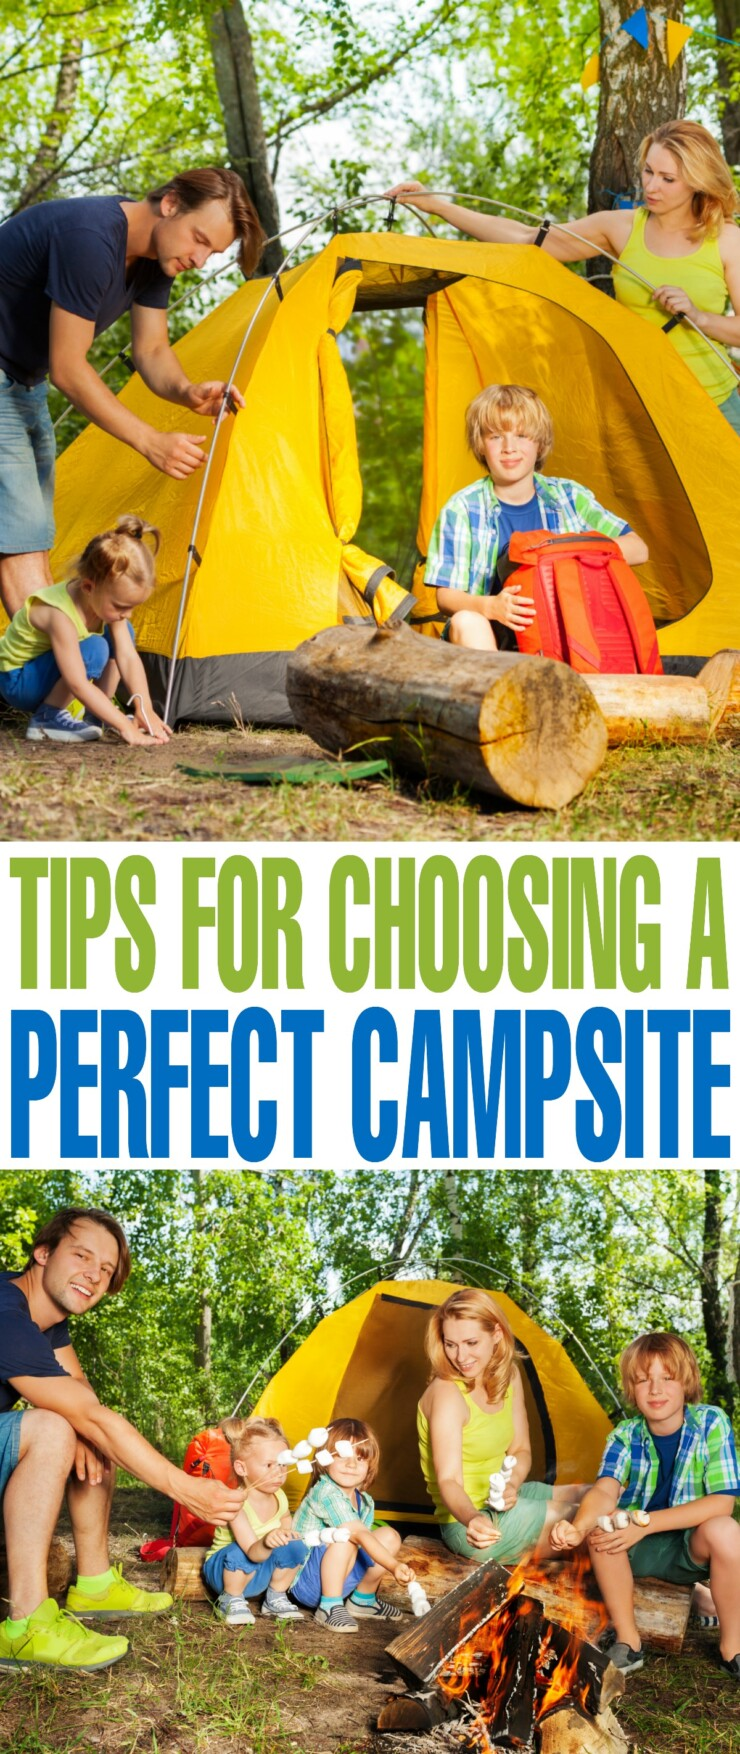 Before heading off into the forest to start your camping experience though, you will want to ensure that you are prepared with the knowledge you need to choose the perfect campsite. After all, the perfect camping trip starts with the place you choose to pitch your tent.